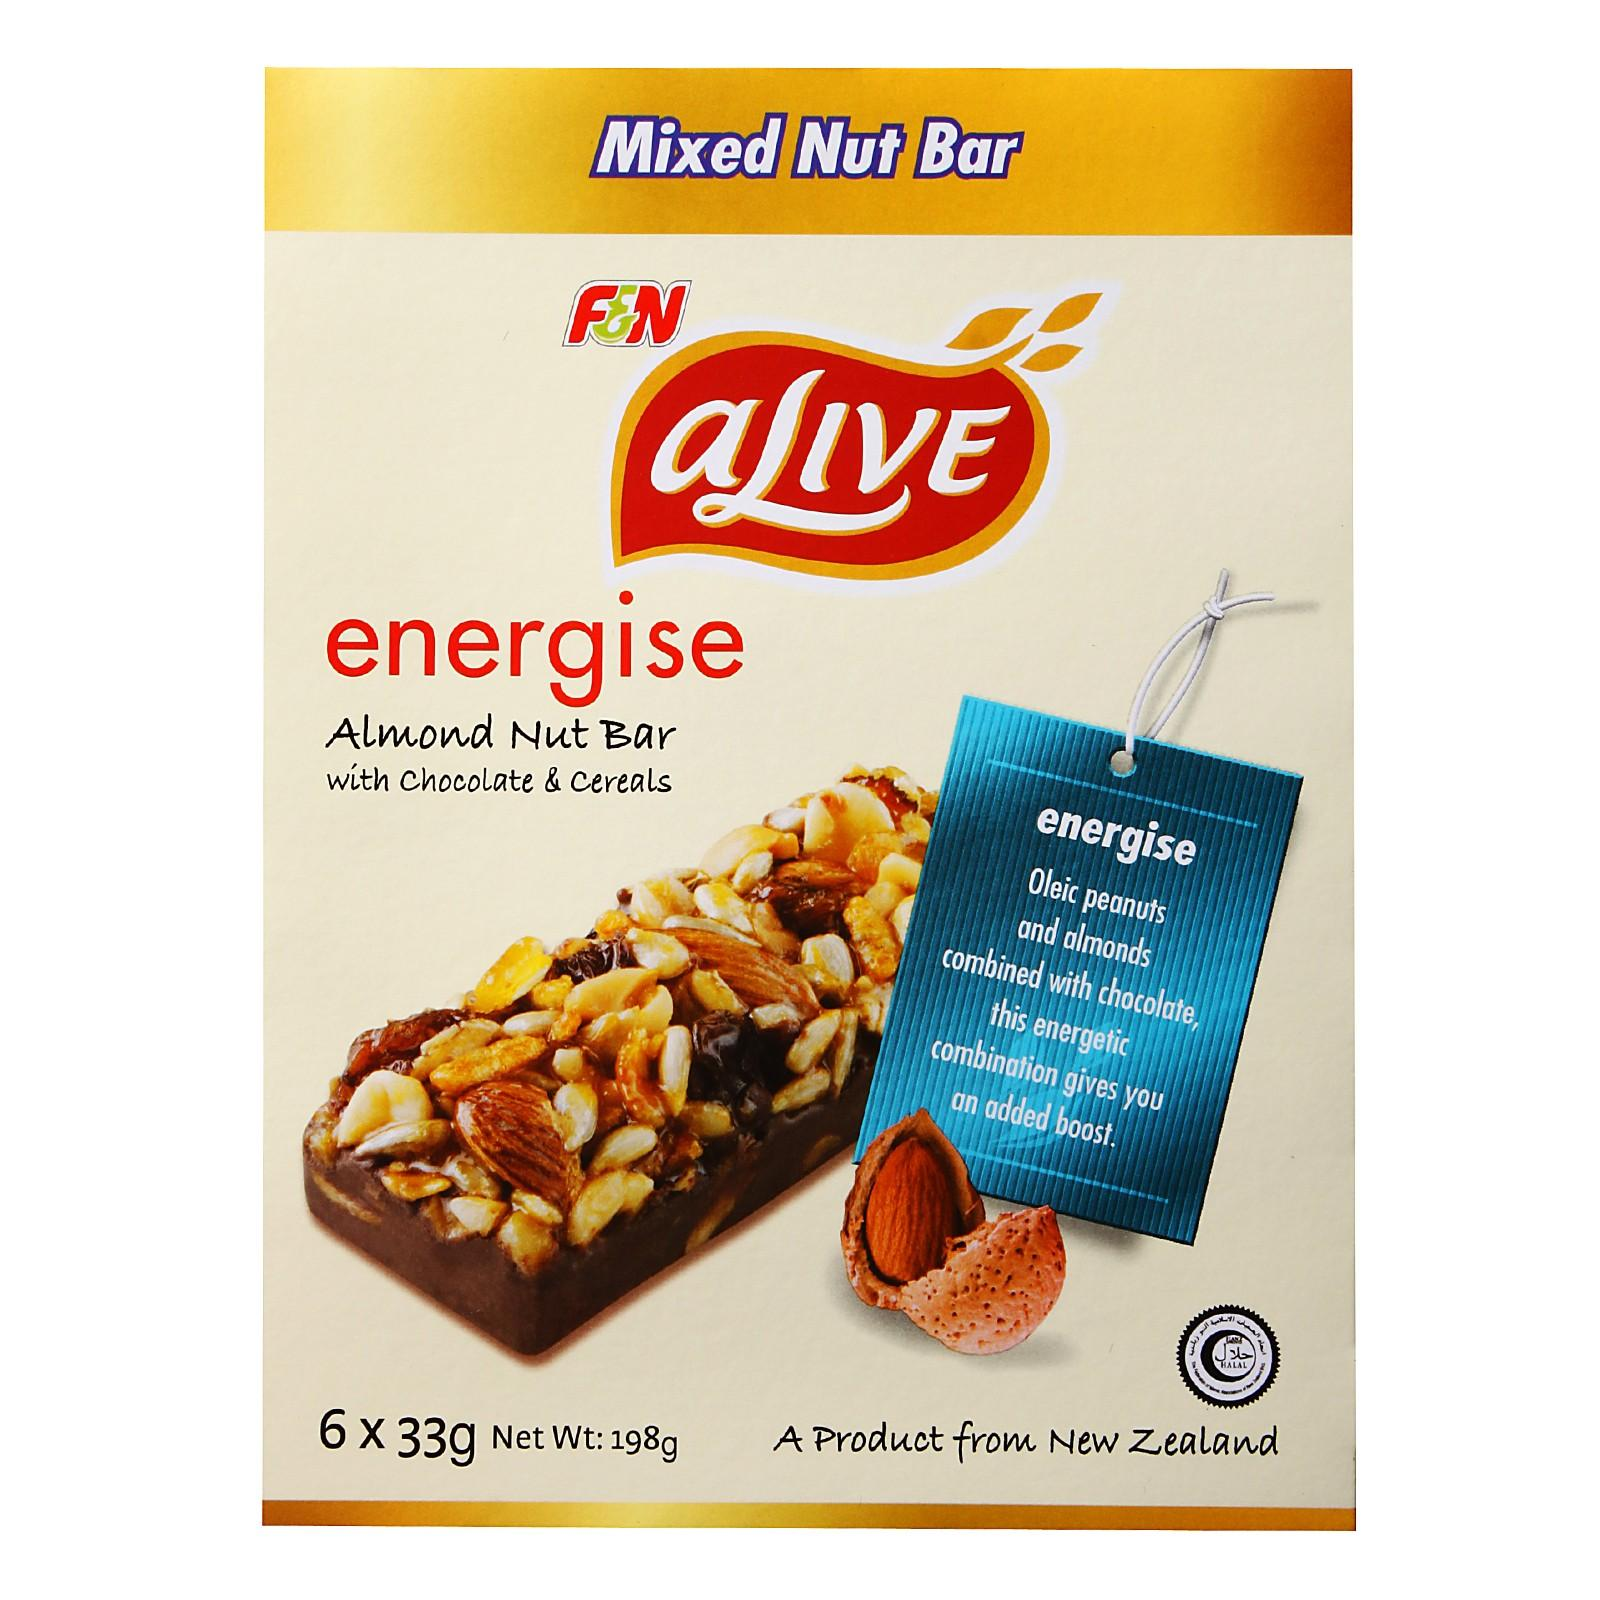 F&N Alive Energise Almond Nut Bar with Chocolate & Cereals